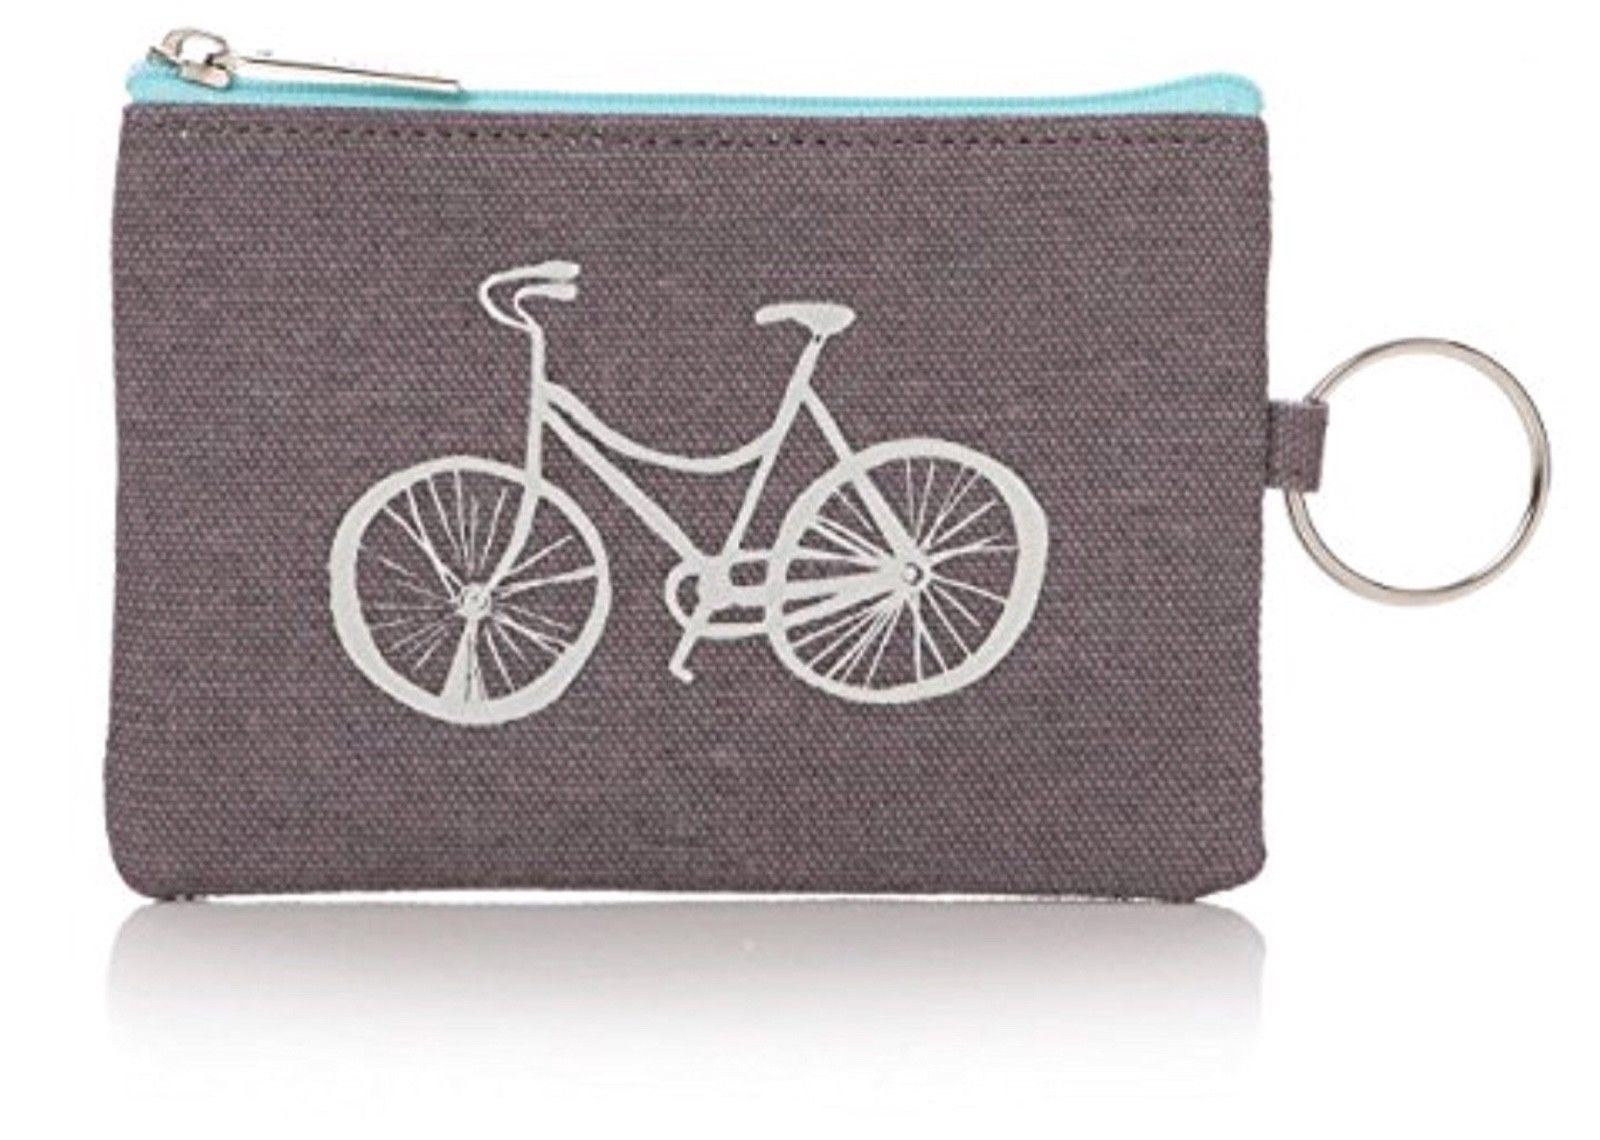 Cotton Canvas Coin Purse Wallet Pouch